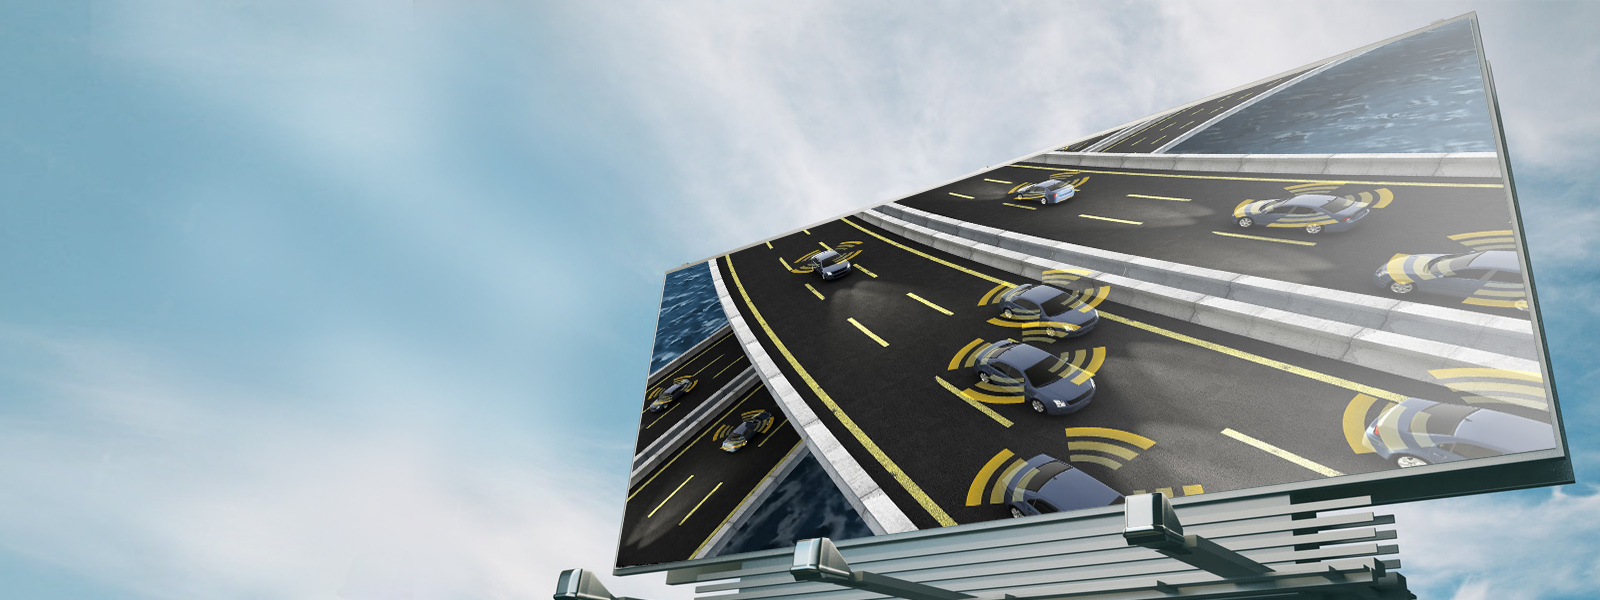 Roadside billboard featuring self-driving cars driving on highway